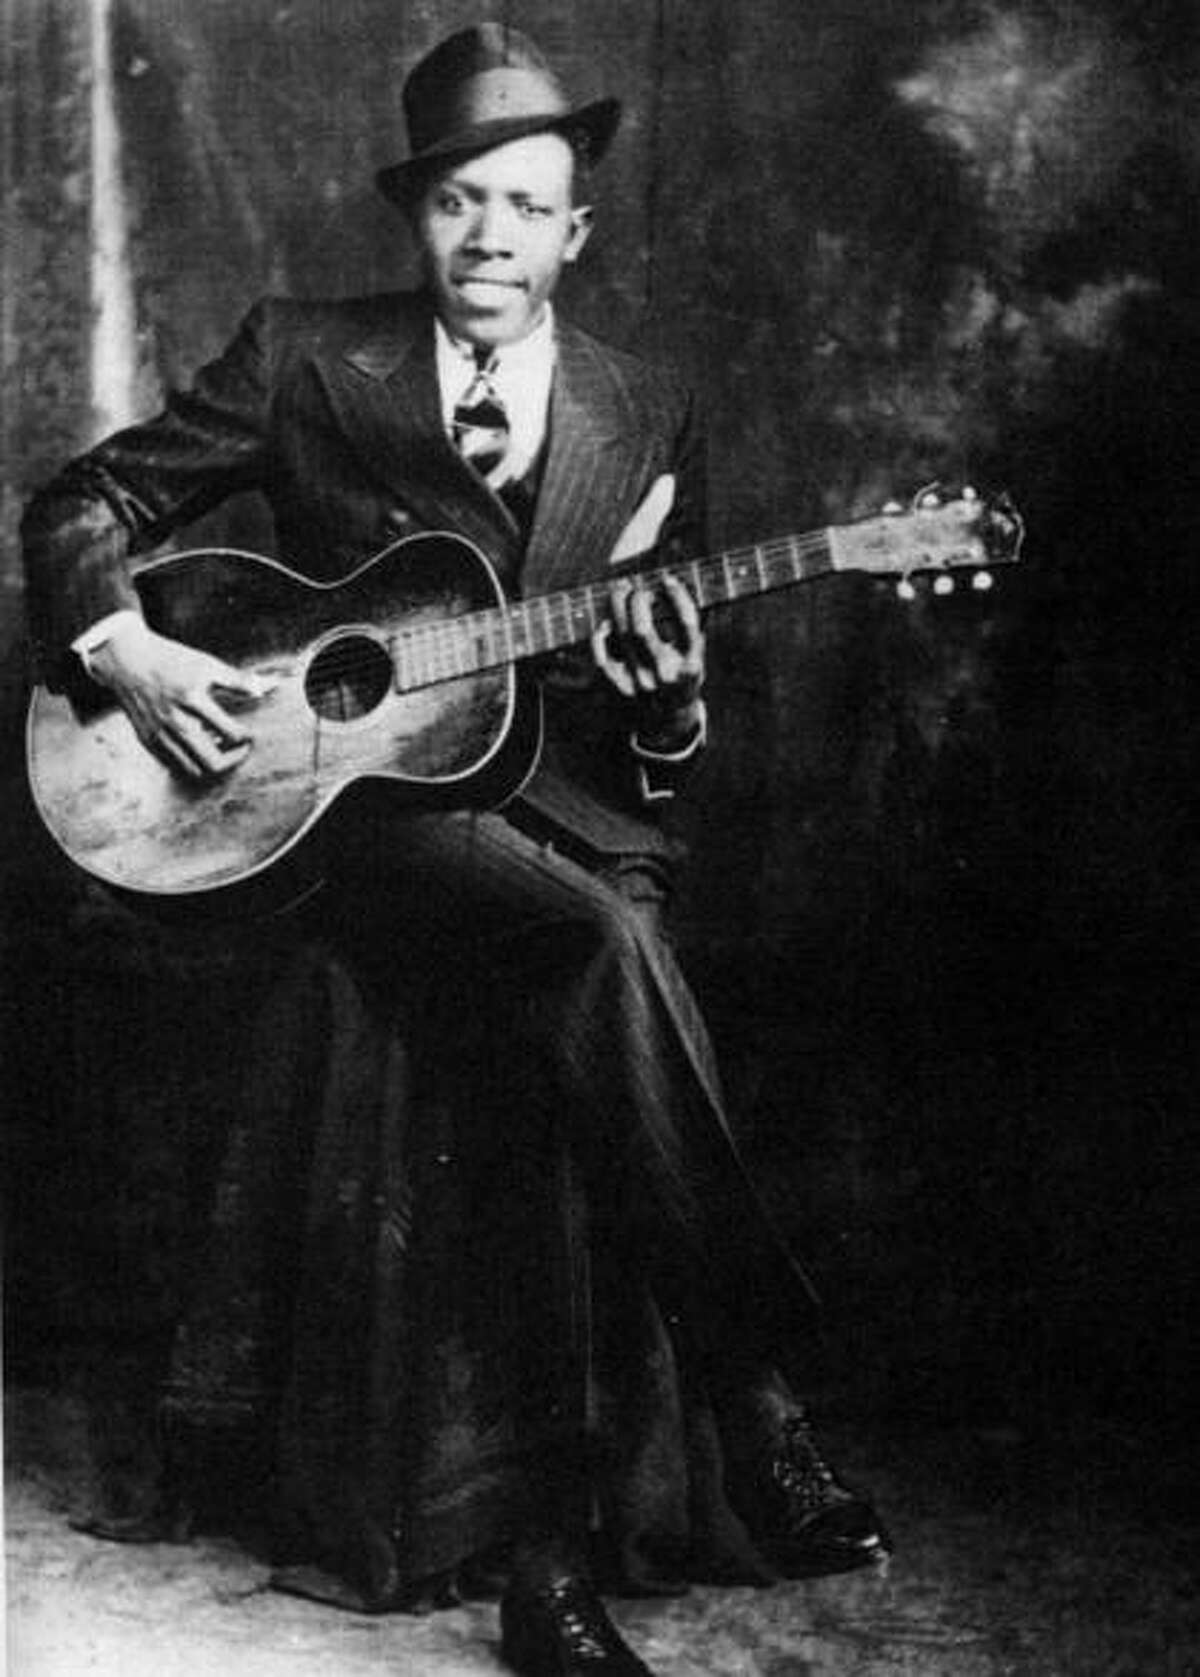 PHOTOS: Famous musicians who have covered Robert Johnson songs There are 30 records with at least one cover of a Johnson song on them that have sold more than a million copies.